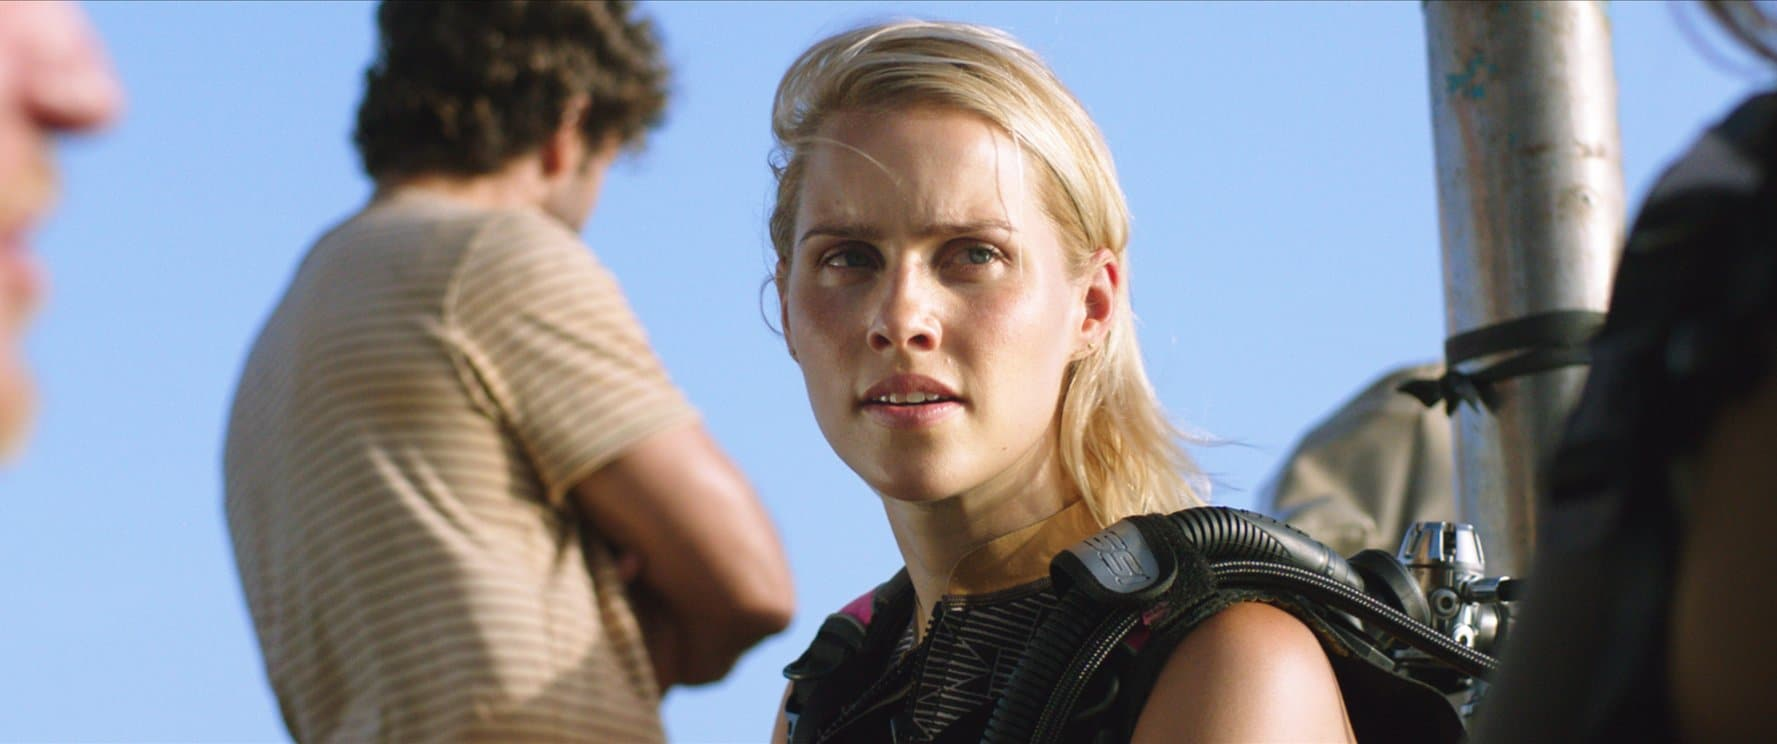 claire holt sharks